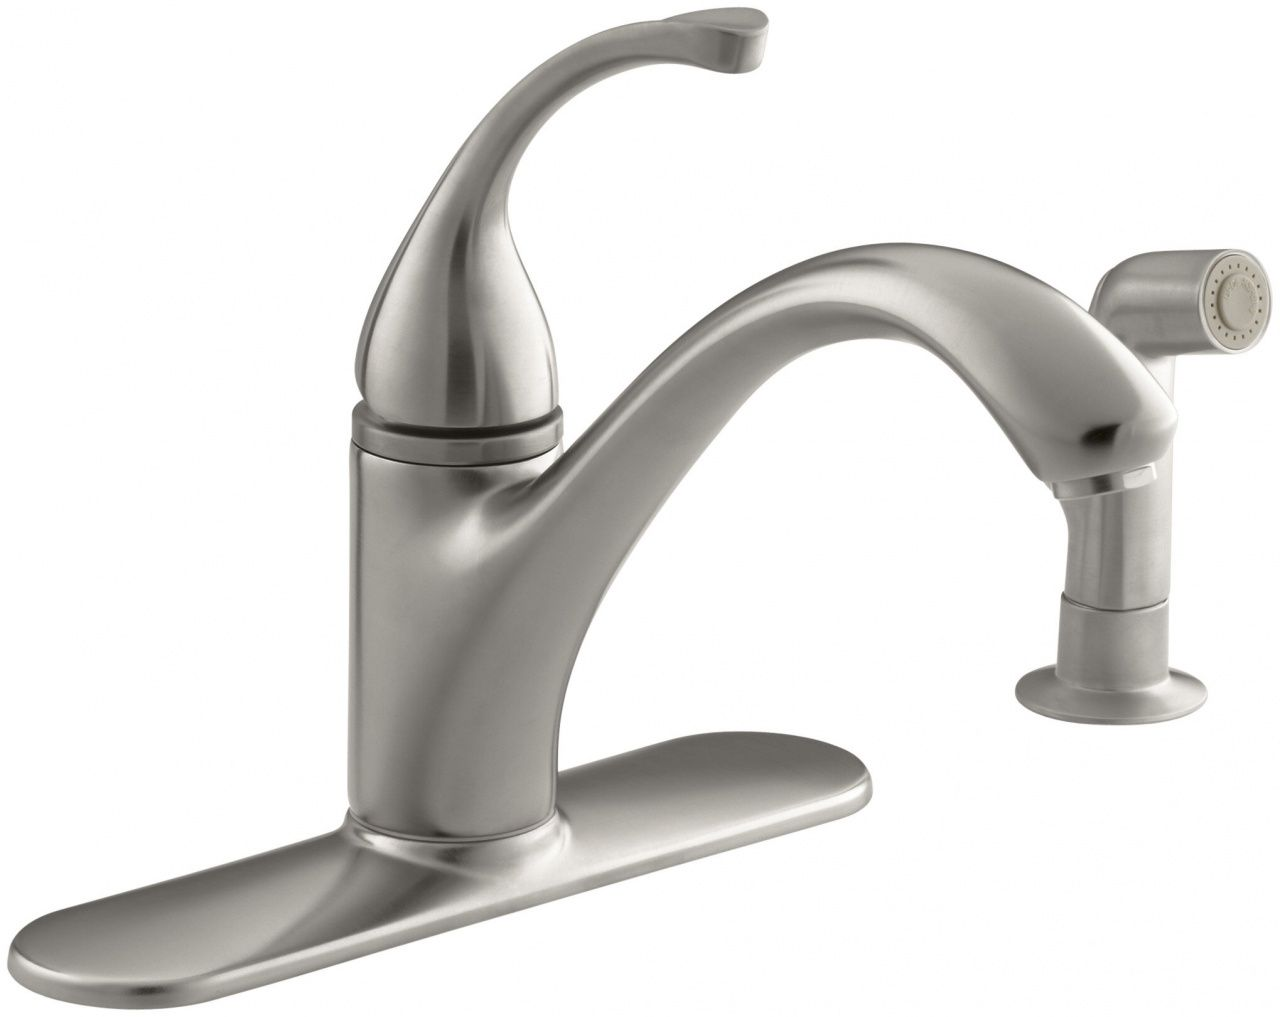 Moen Kitchen Faucet Leaking From Base Of Spout In 2020 Kitchen Sink Faucets Moen Kitchen Faucet Kitchen Handles